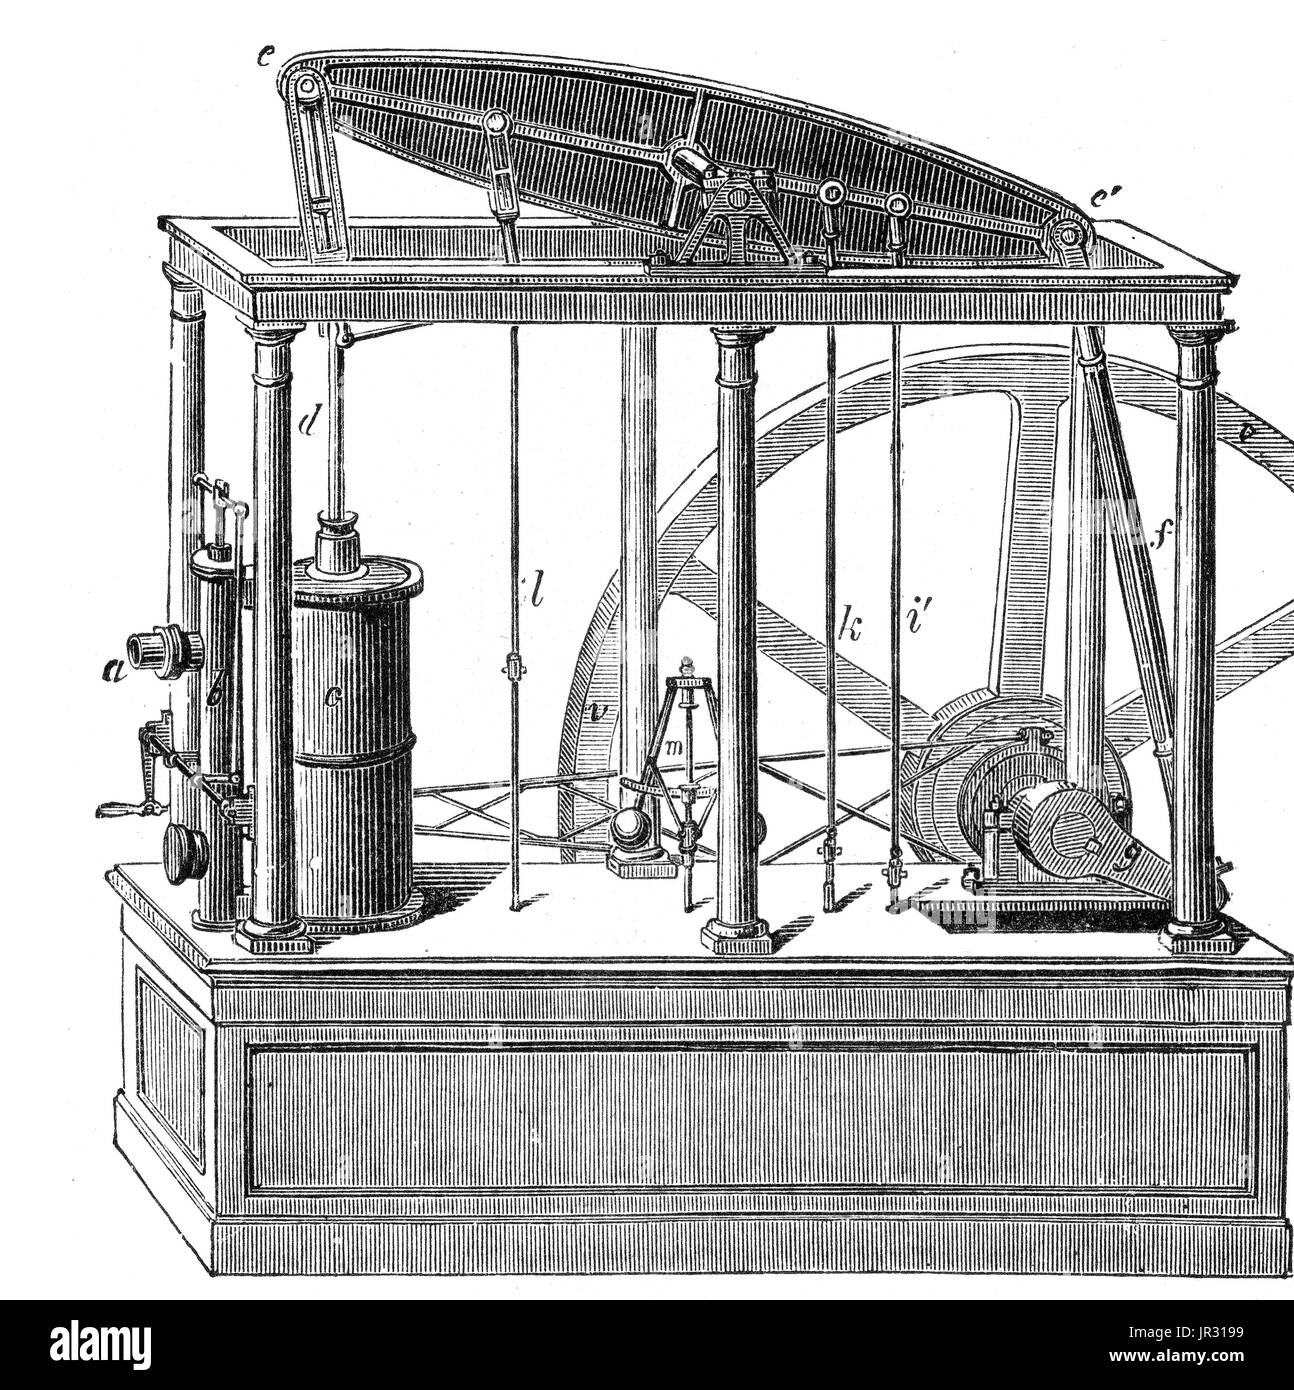 The Watts steam engine was the first type of steam engine to make use of steam at a pressure just above atmospheric to drive the piston helped by a partial vacuum. Improving on the design of the 1712 Newcomen engine, the Watt steam engine, developed sporadically from 1763 to 1775, was the next great step in the development of the steam engine. Offering a dramatic increase in fuel efficiency, the new design replaced Newcomen engines in areas where coal was expensive, and then went on to be used in the place of most natural power sources such as wind and water. James Watt's design became synonym - Stock Image